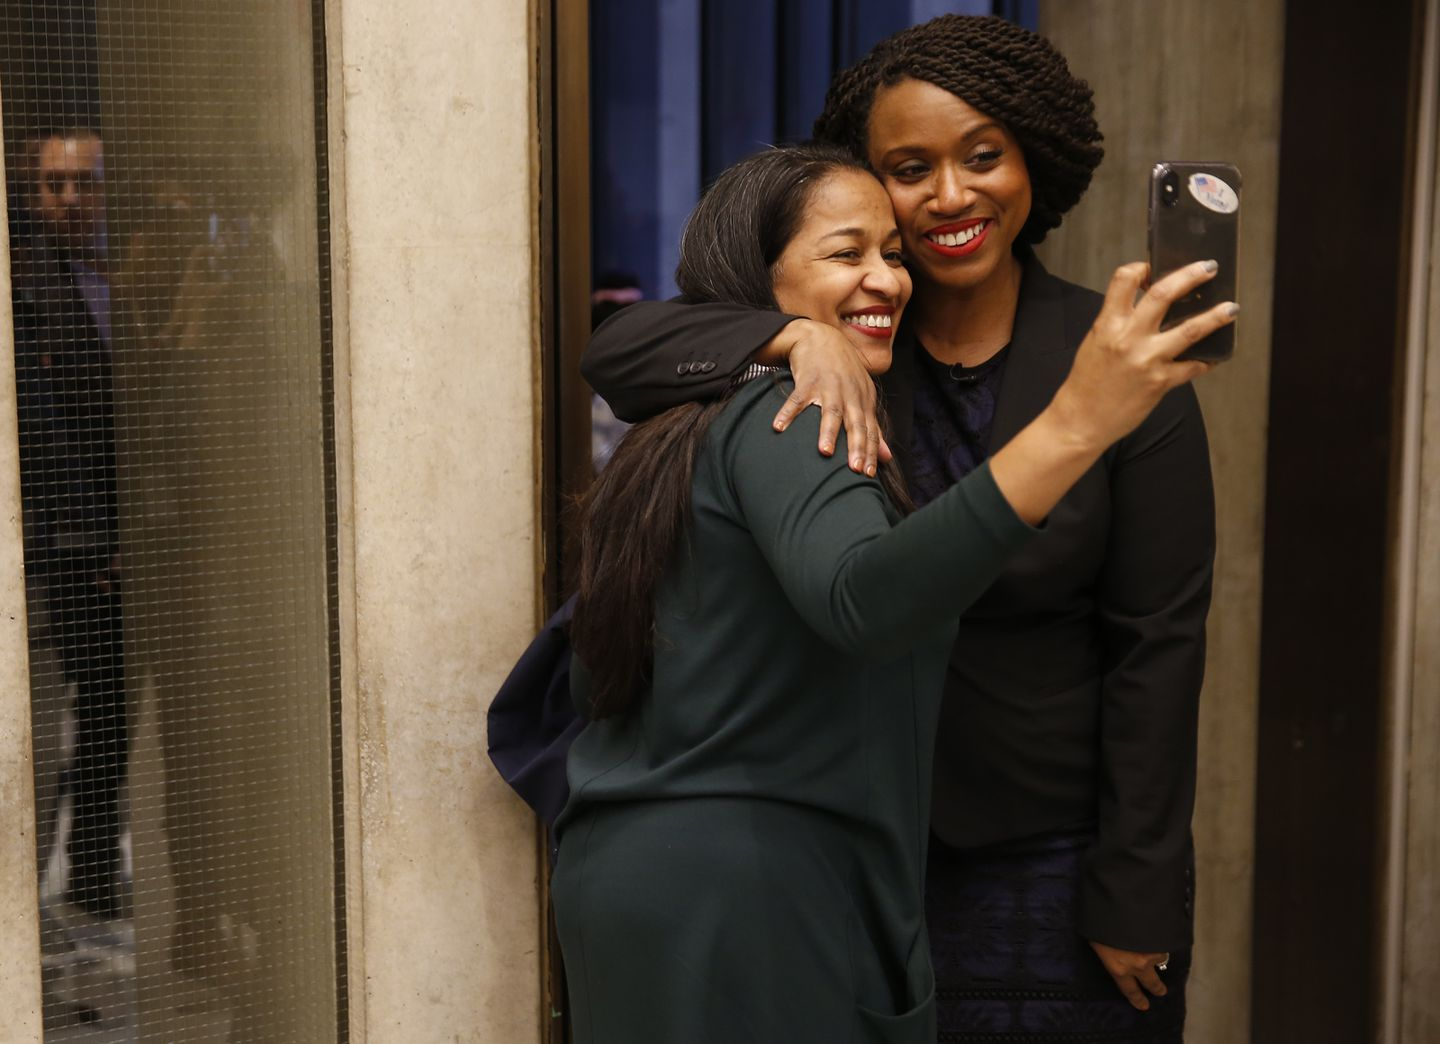 Ayanna Pressley took a photograph with a well-wisher at City Hall.